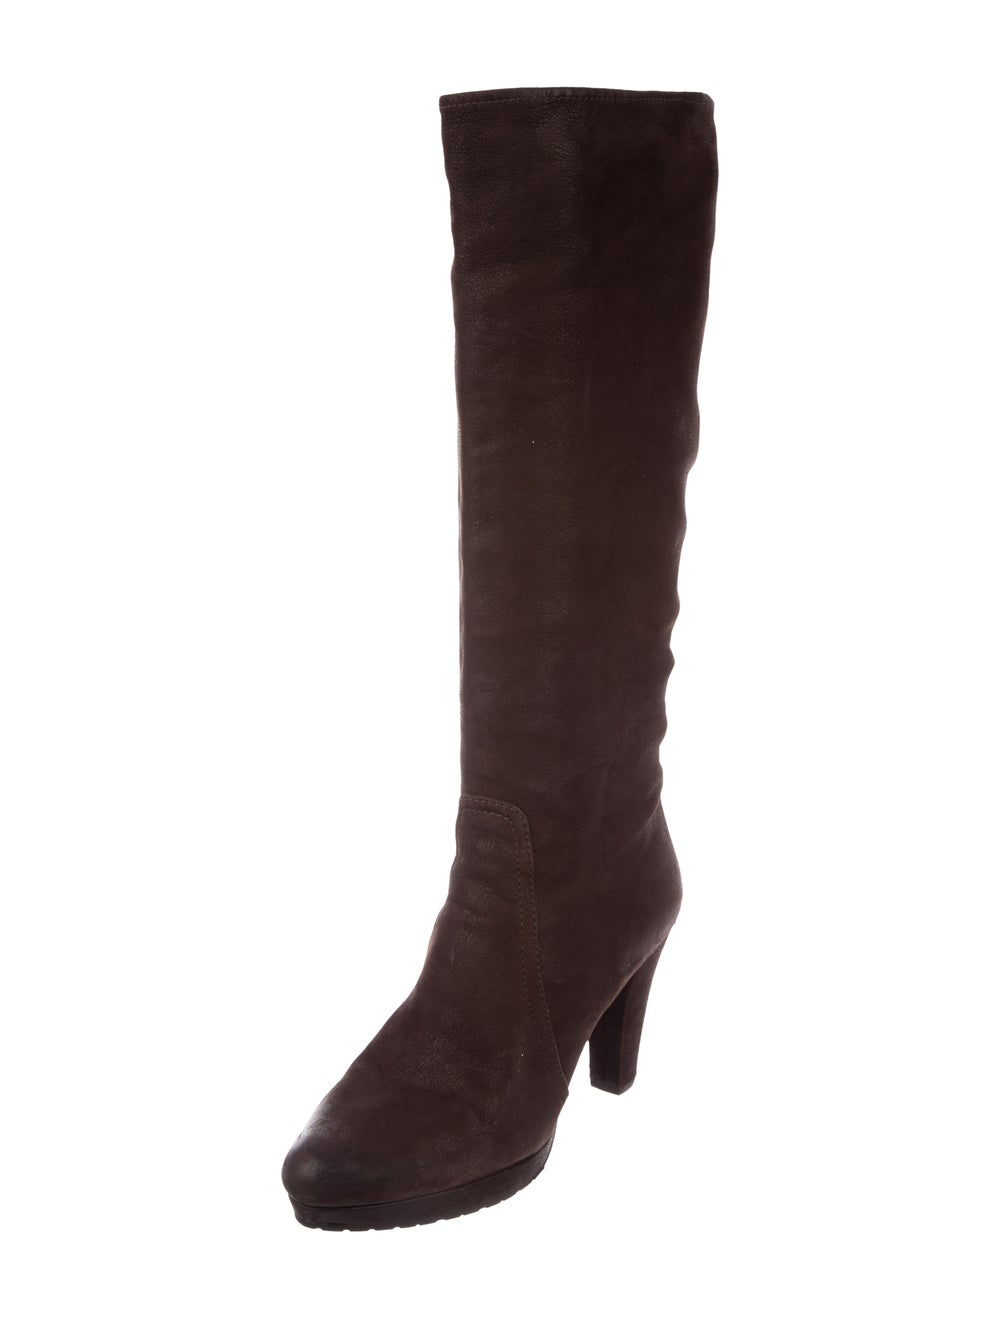 Prada Suede Knee-High Boots Brown - image 2